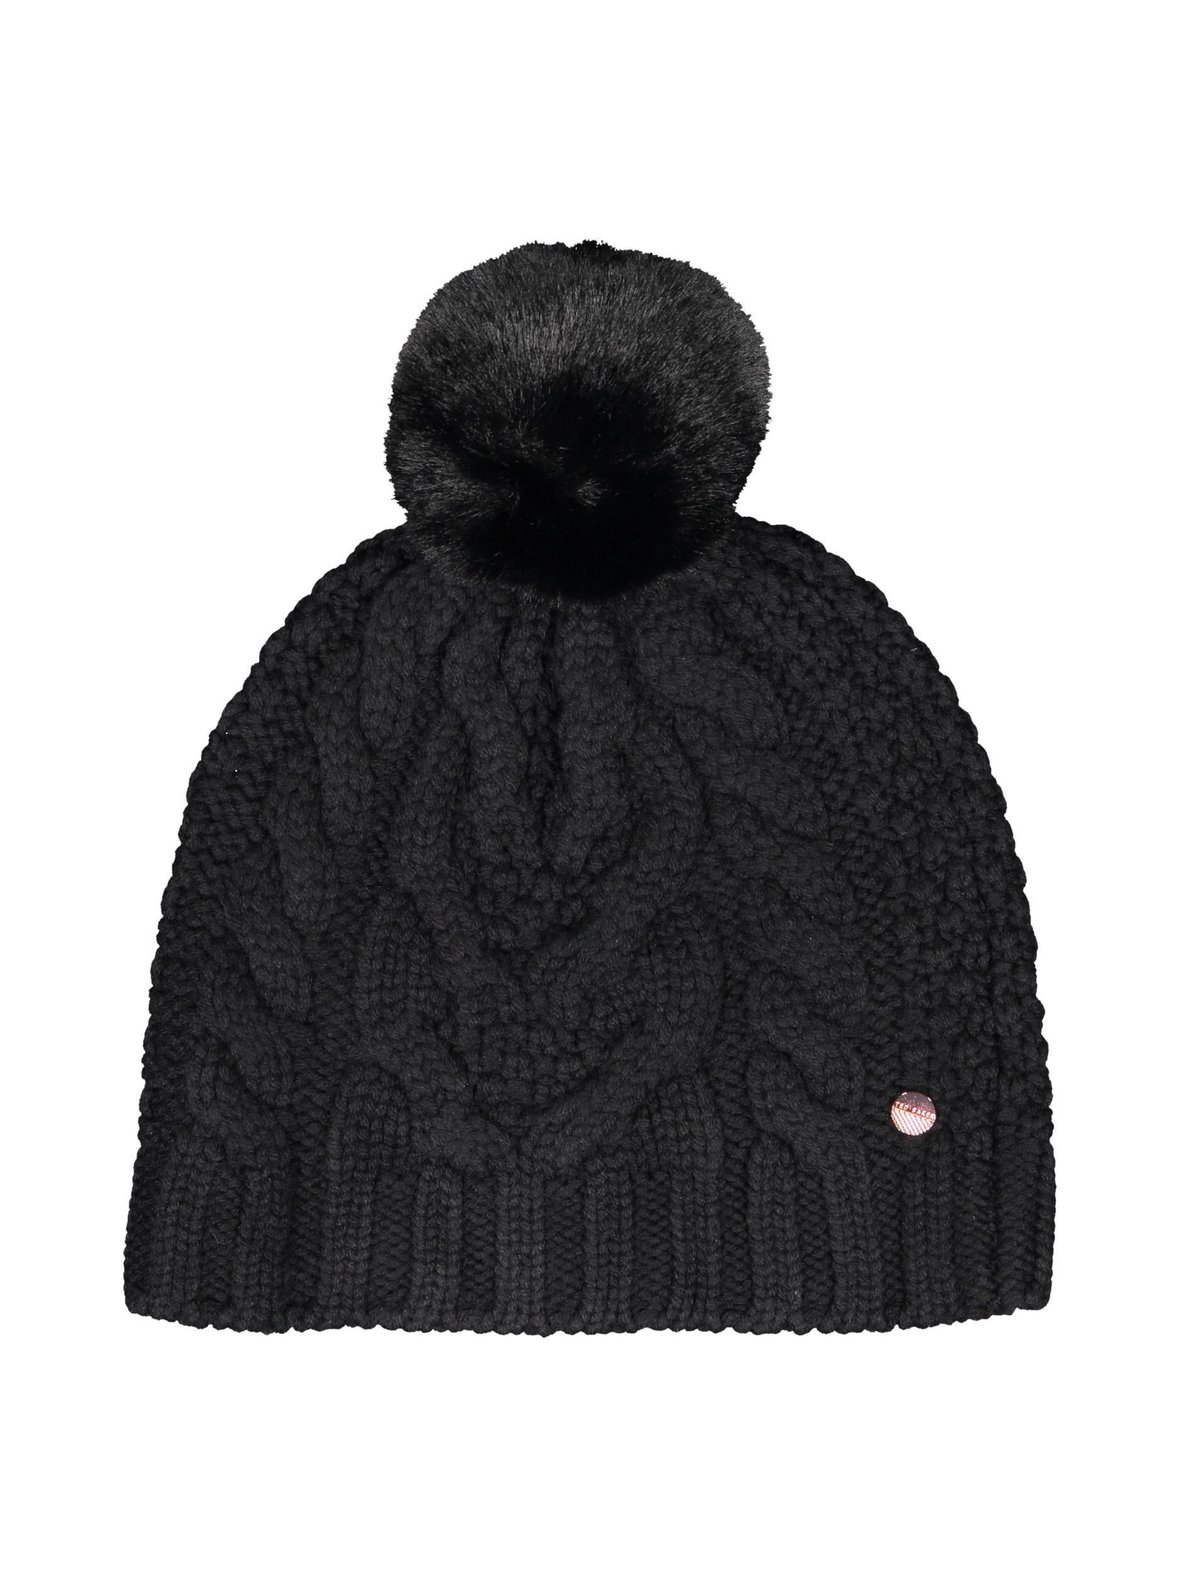 382d76adcc4 Black (musta) Ted Baker Quirsa Cable Knit Pom Hat -pipo 01-151766 ...